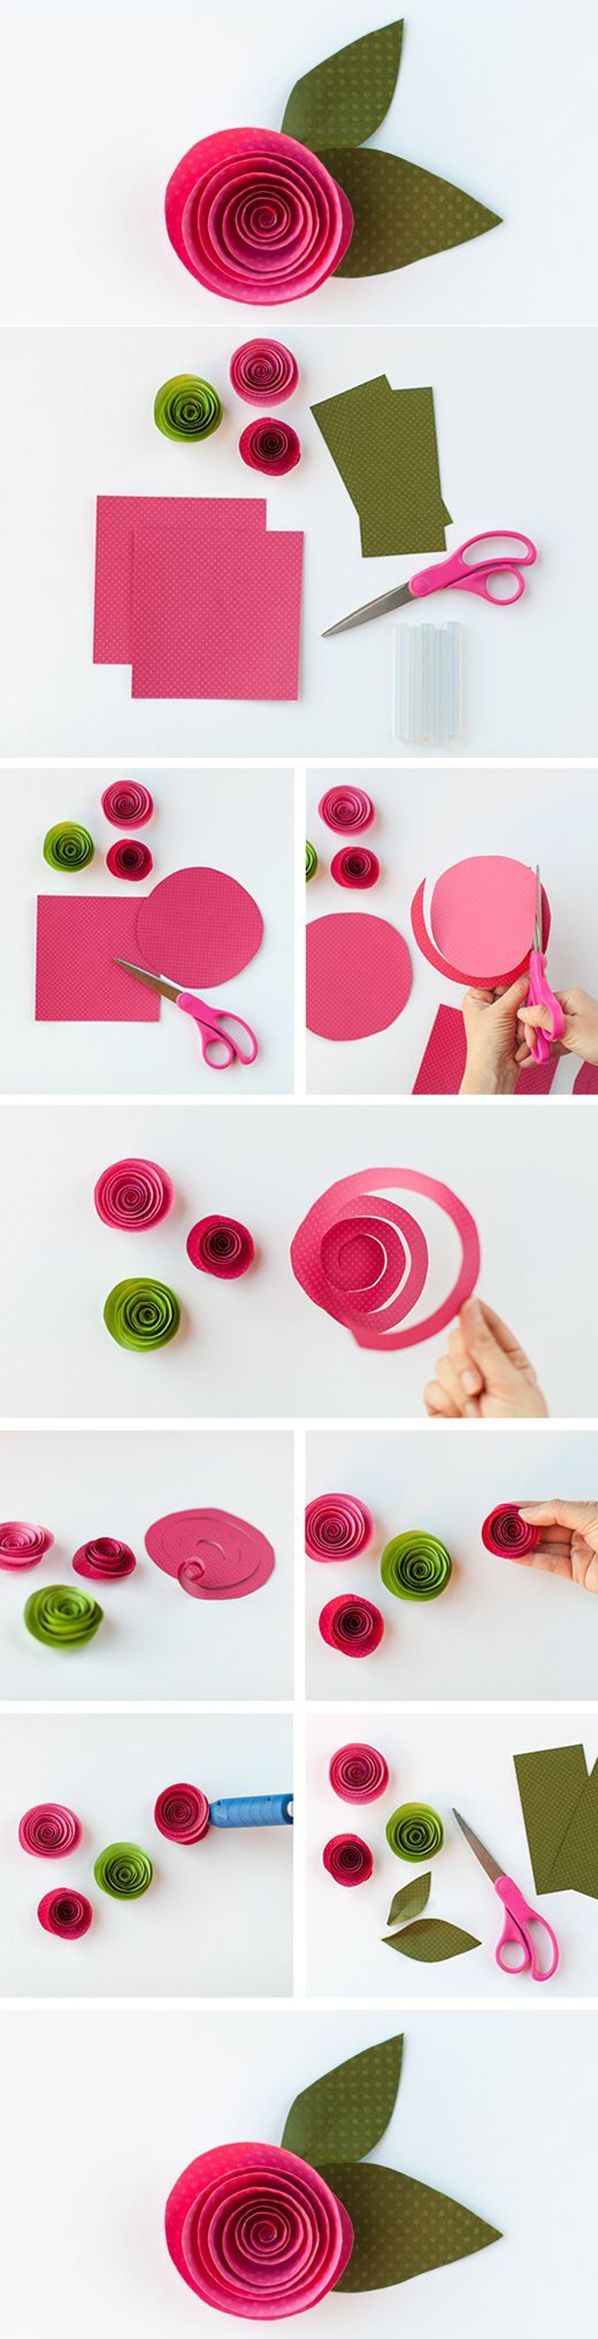 Easy and beautiful paper flower diy crafts knutselidee easy and beautiful paper flower diy crafts mightylinksfo